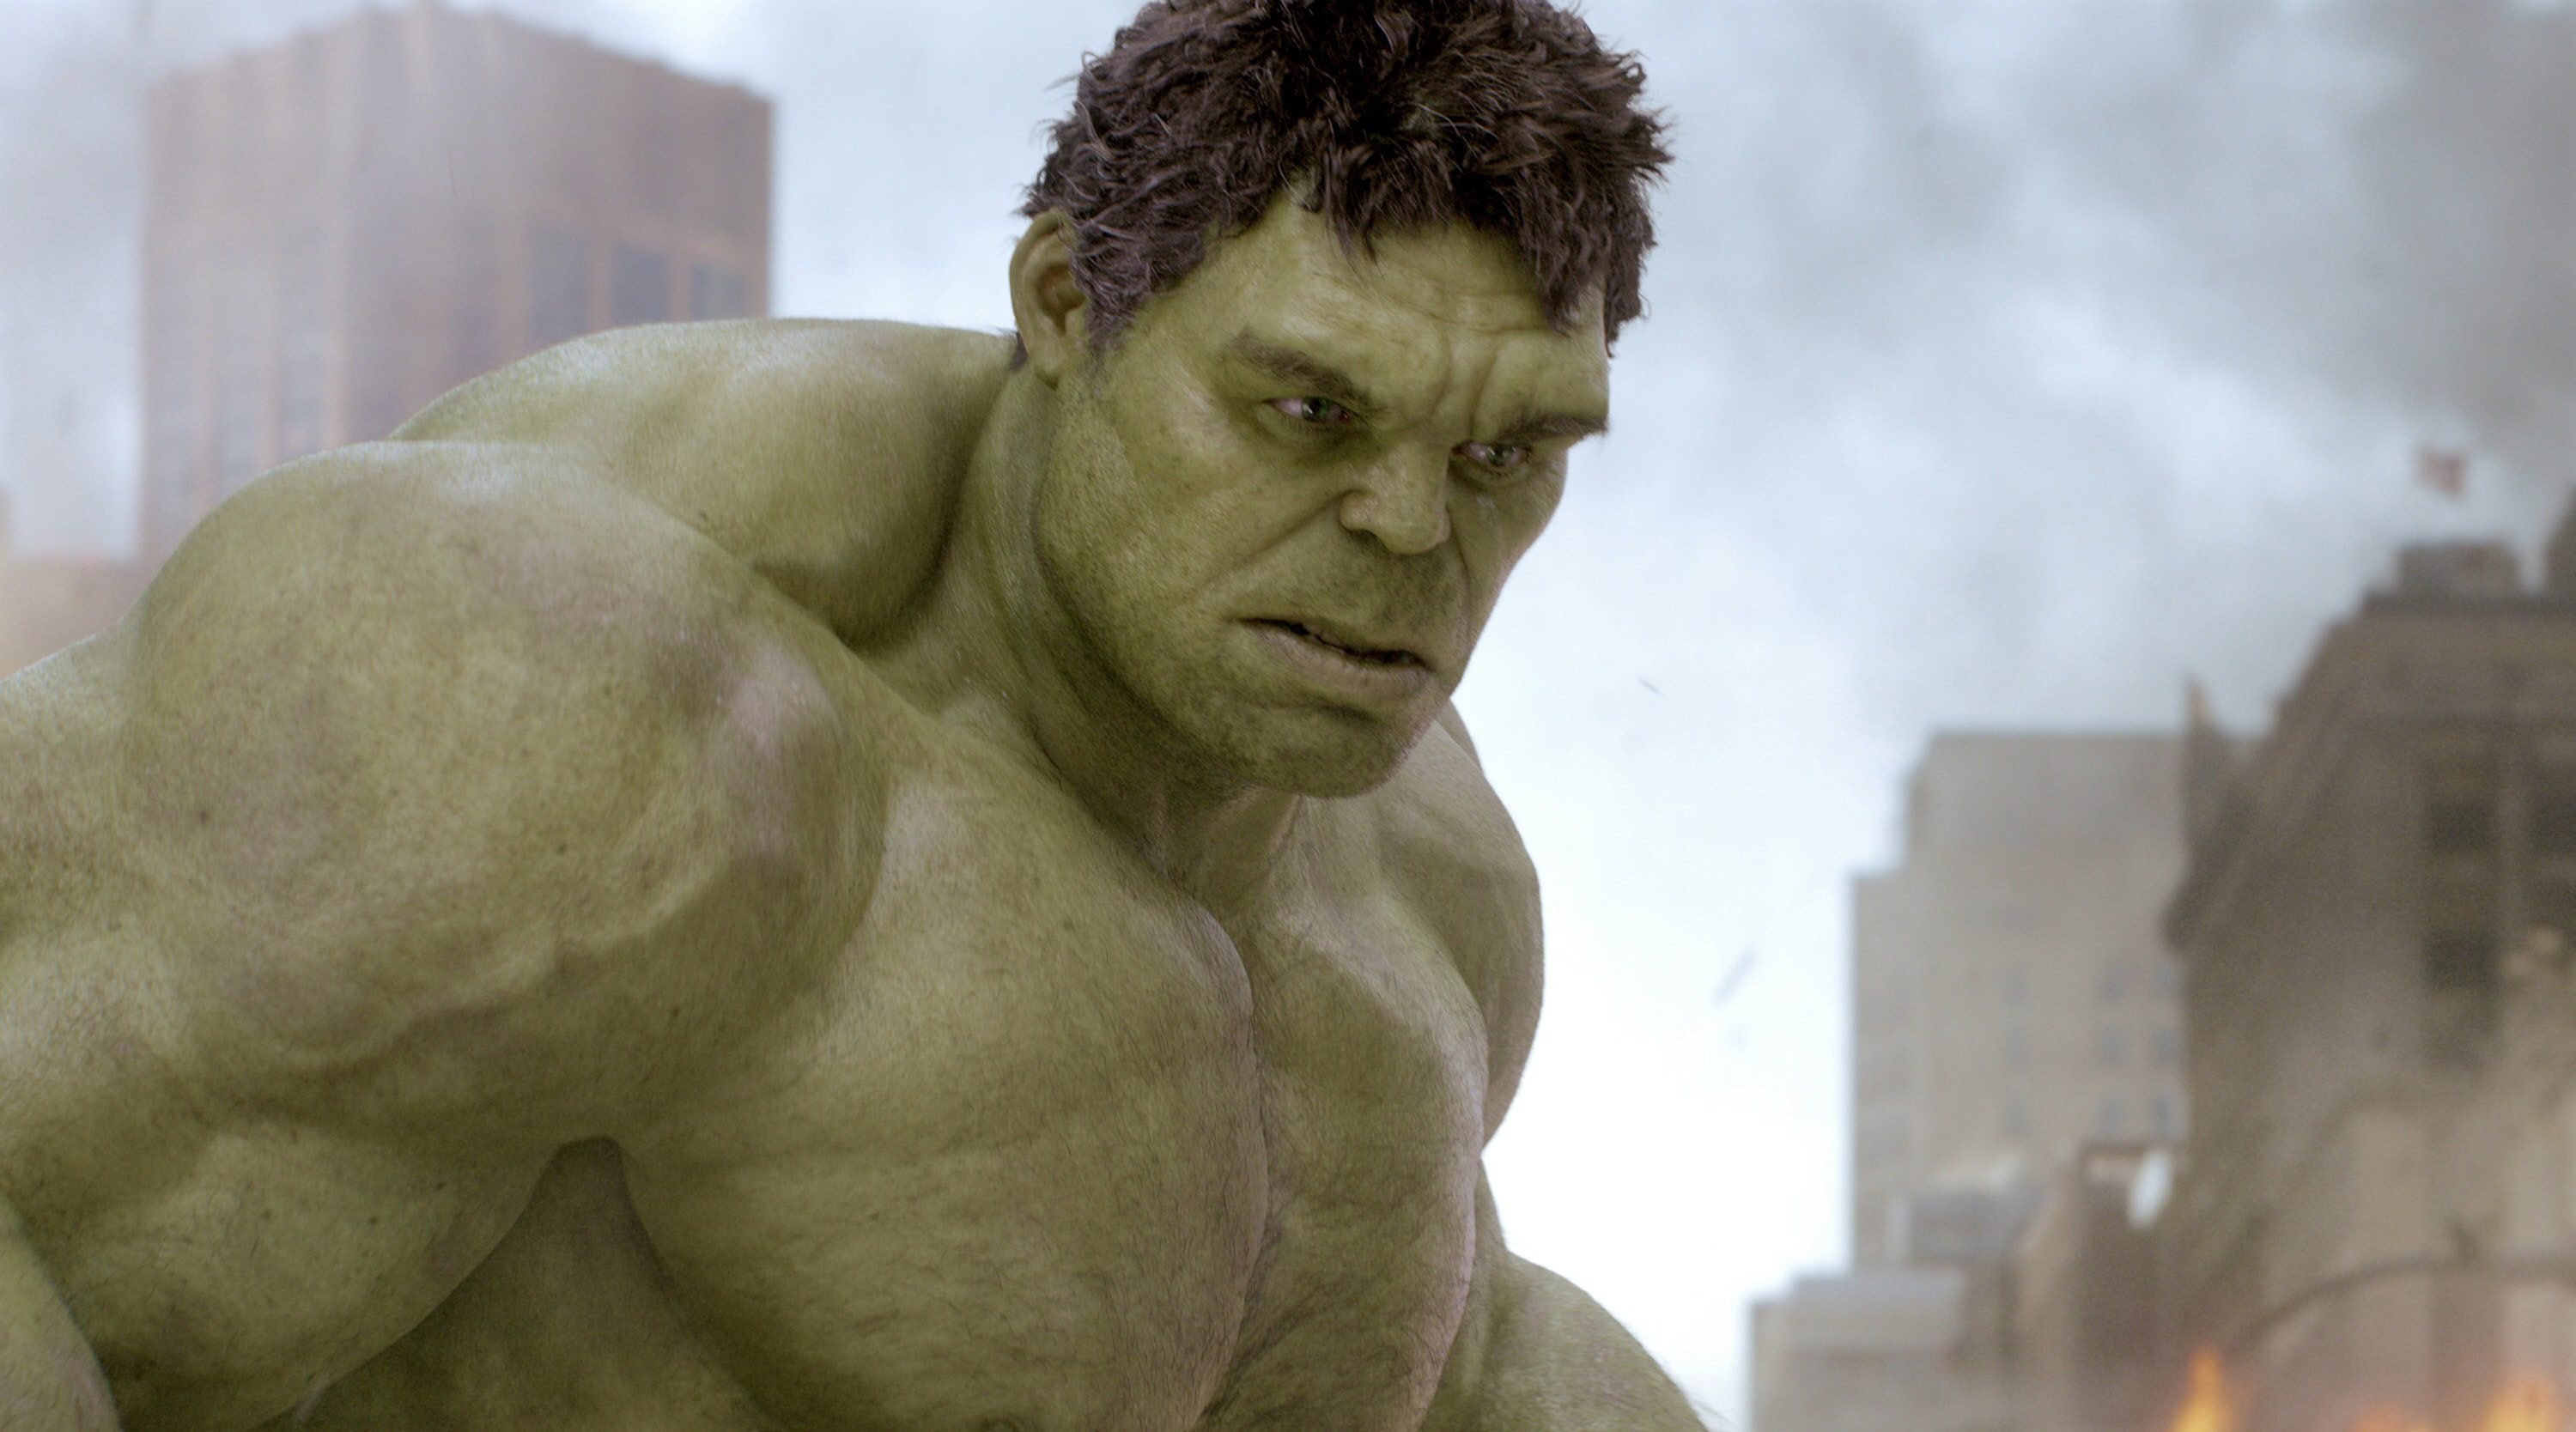 The Hulk may have its solo movie (sort of) after all! (Photo: WENN)